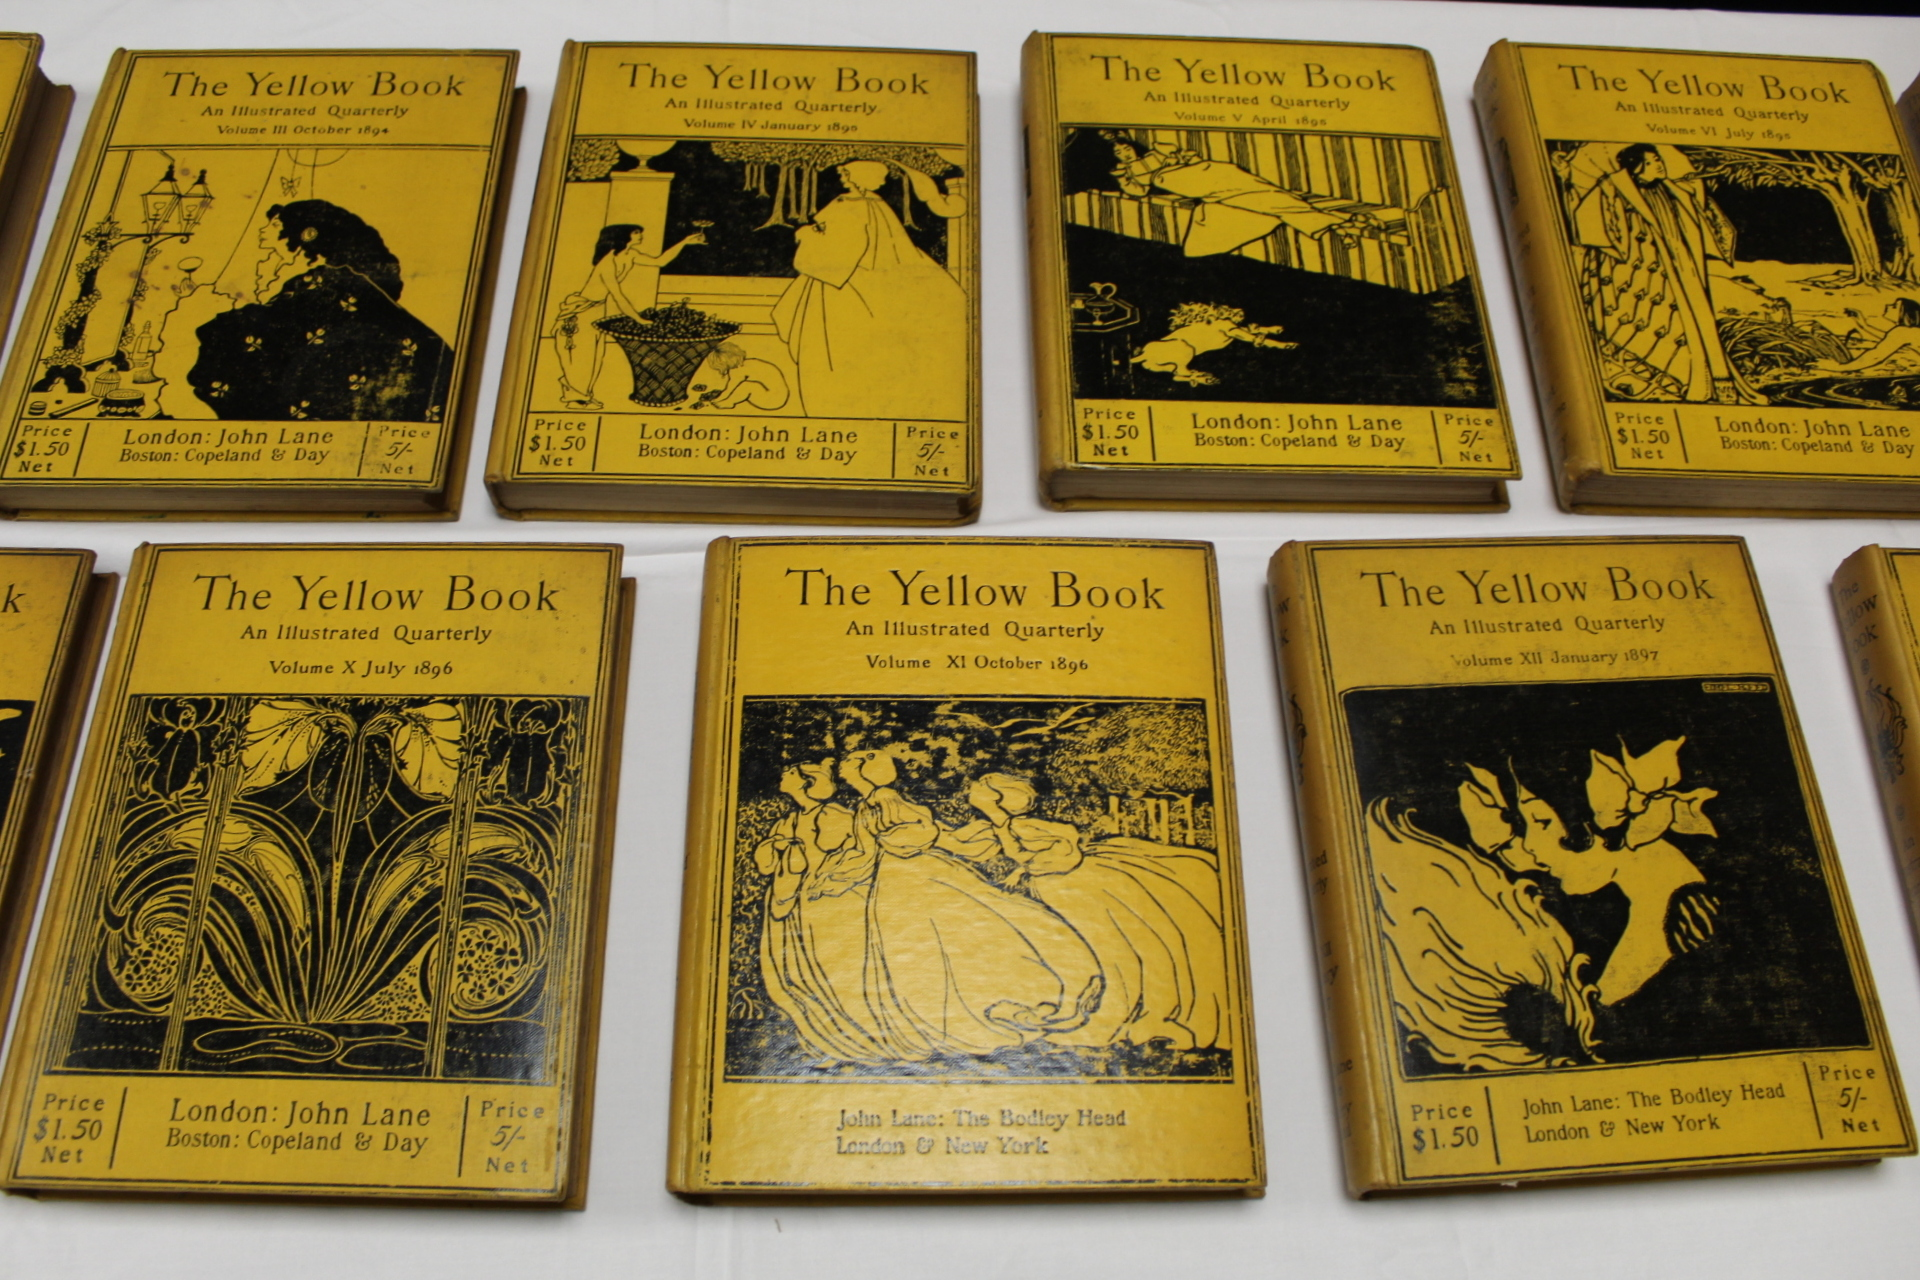 THE YELLOW BOOK.An Illustrated Quarterly. A set of 13 vols., many fine illus. Small quarto. - Image 9 of 45